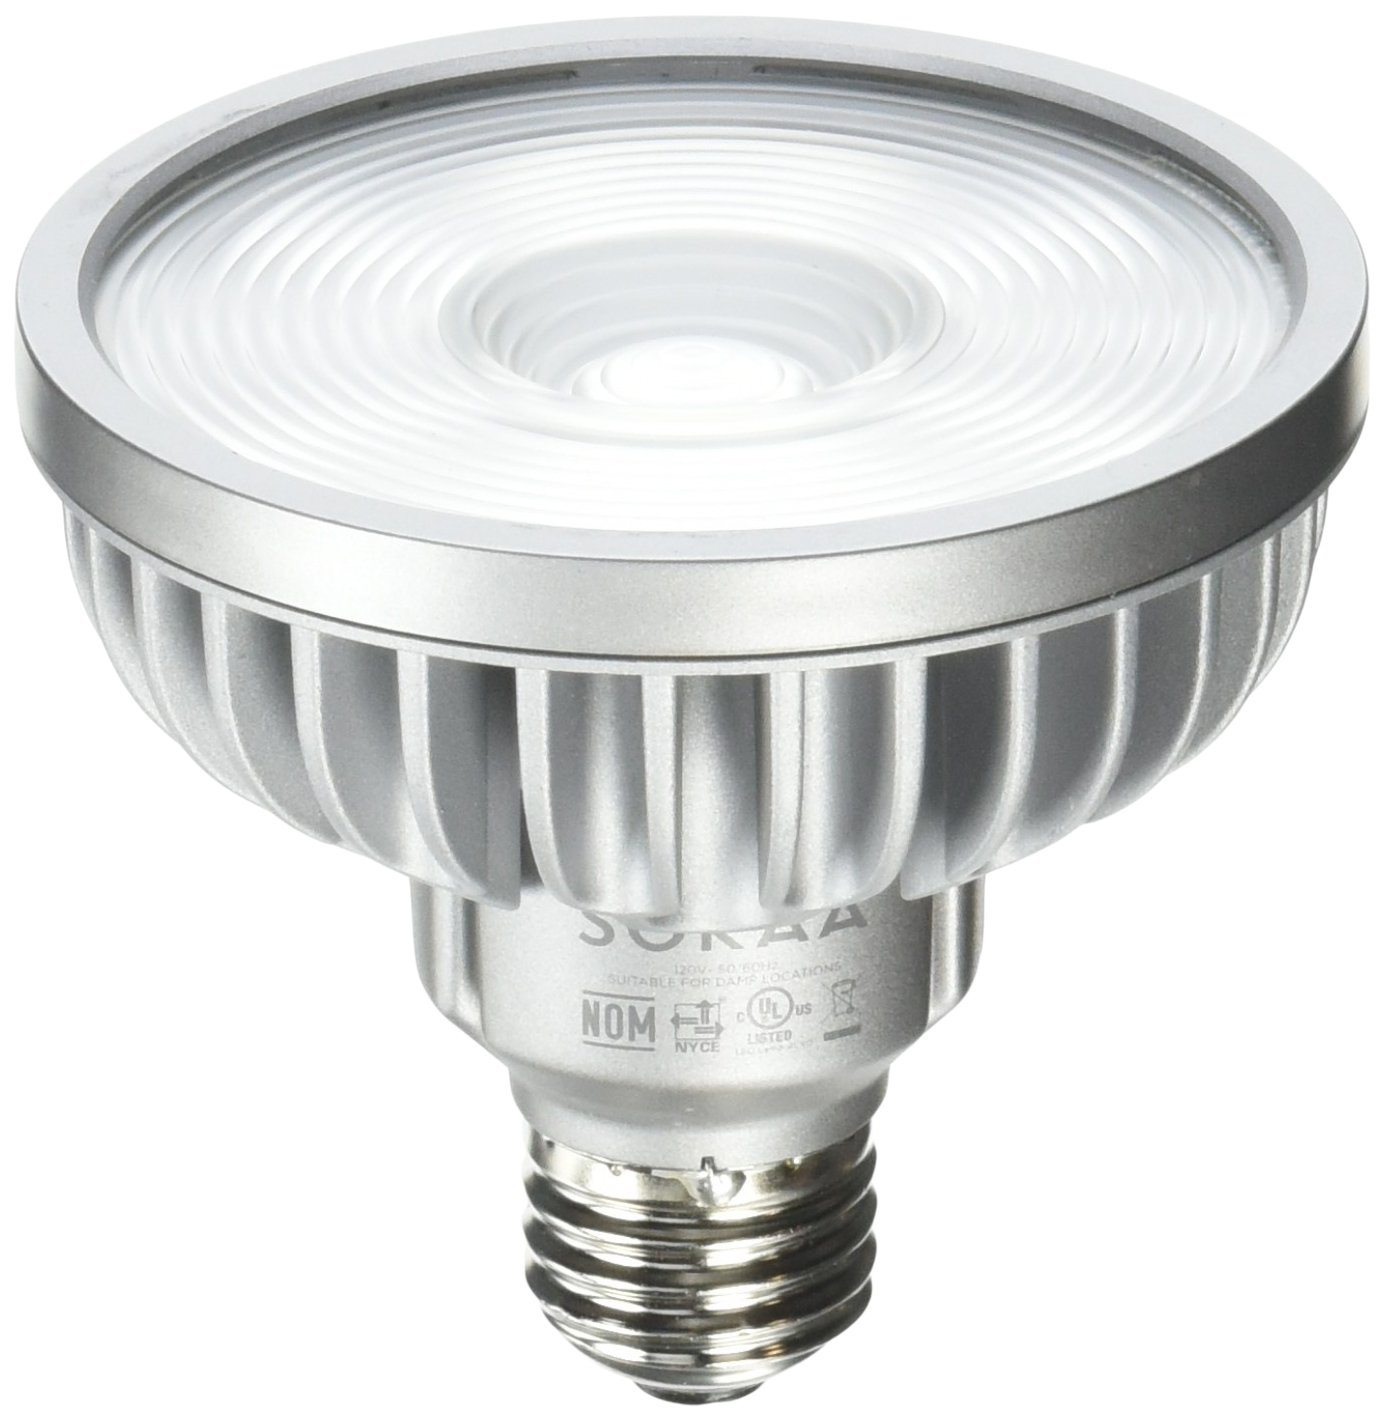 Bulbrite SP30S-18-60D-827-03 SORAA 18.5W LED PAR30S 2700K PREM. 60° Dimmable Light Bulb, Silver